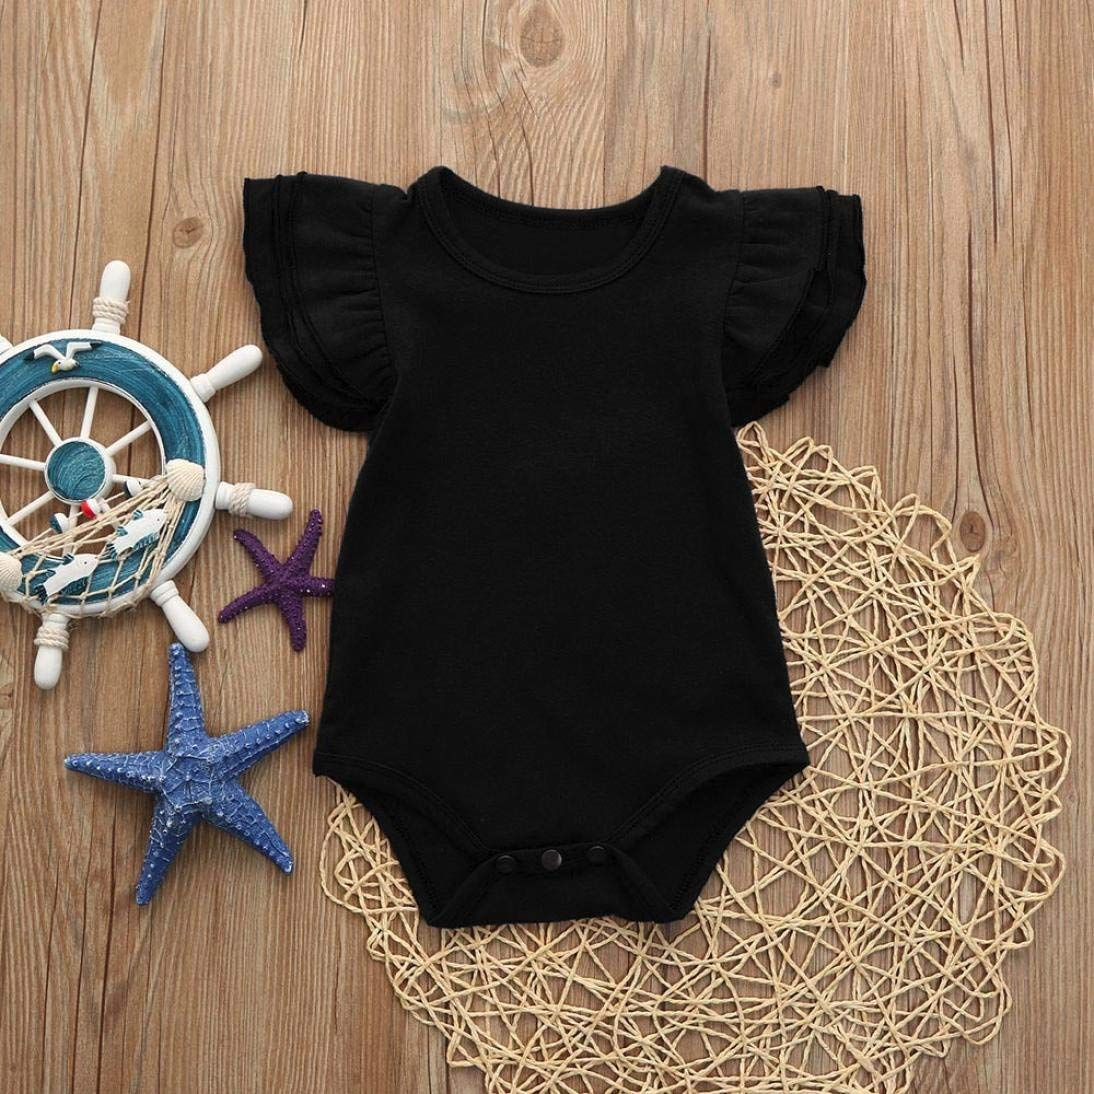 866b84b51c6c Amazon.com: GWshop Cute Baby Playsuit, Baby Girls Jumpsuit, Newborn Infant  Solid Colored Summer Romper Bodysuit Sundress Outfits: Clothing